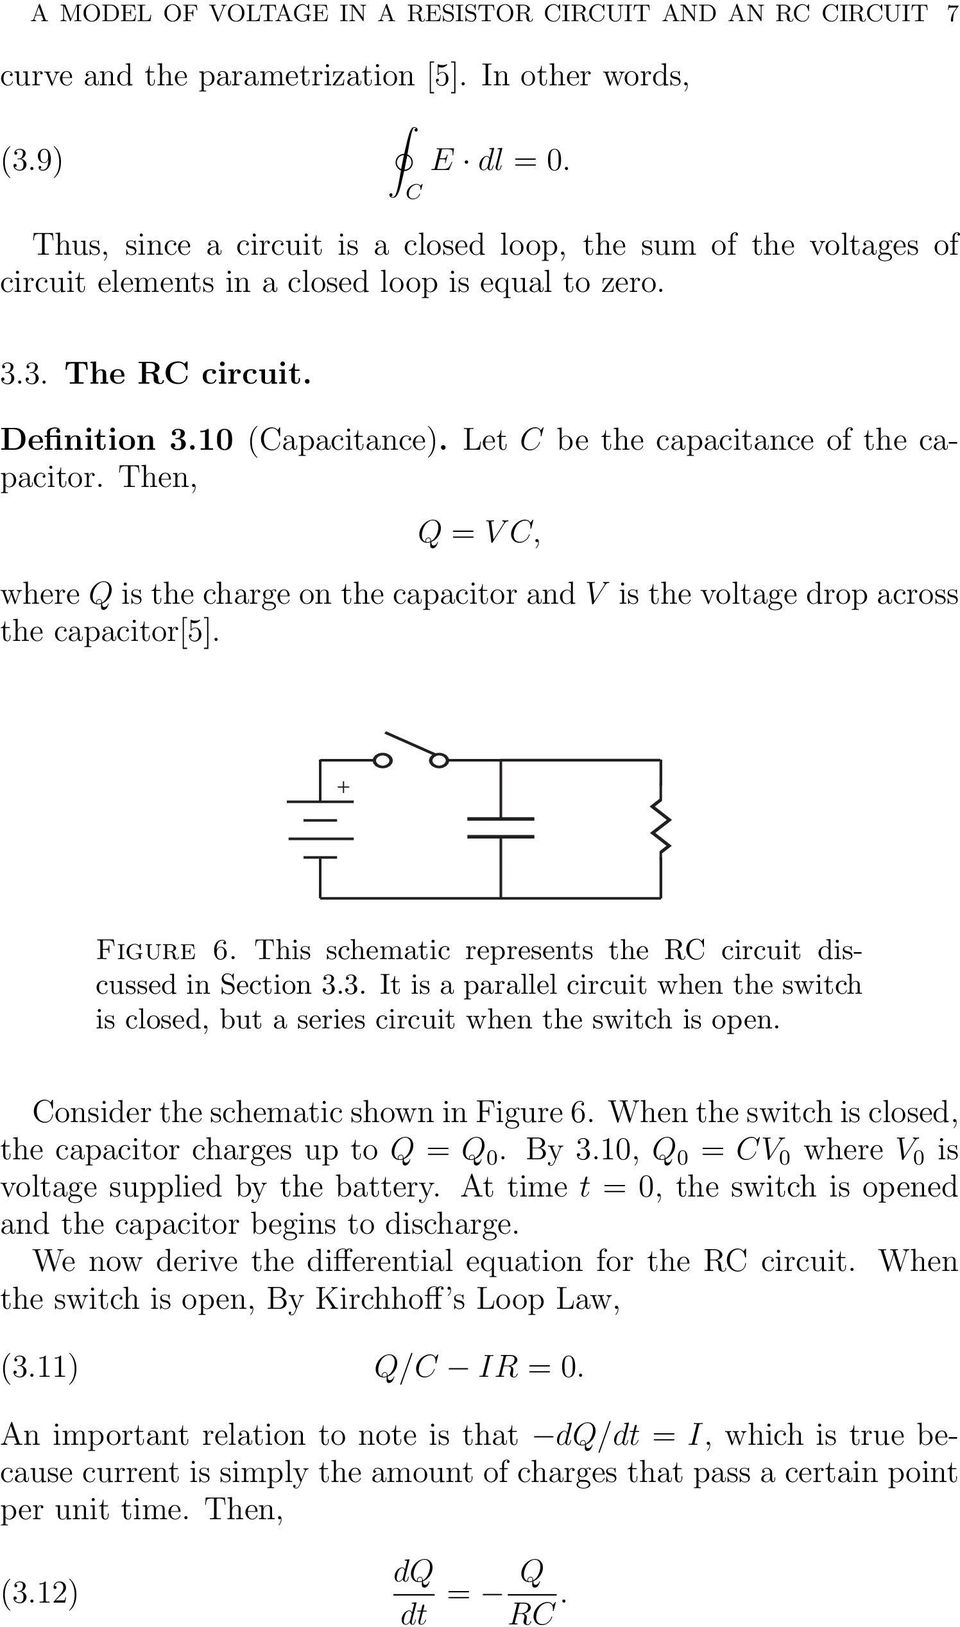 A Model Of Voltage In Resistor Circuit And An Rc Pdf Answer 1 Has Switches Series 2 Let C Be The Capacitance Capacitor Then Q V Where